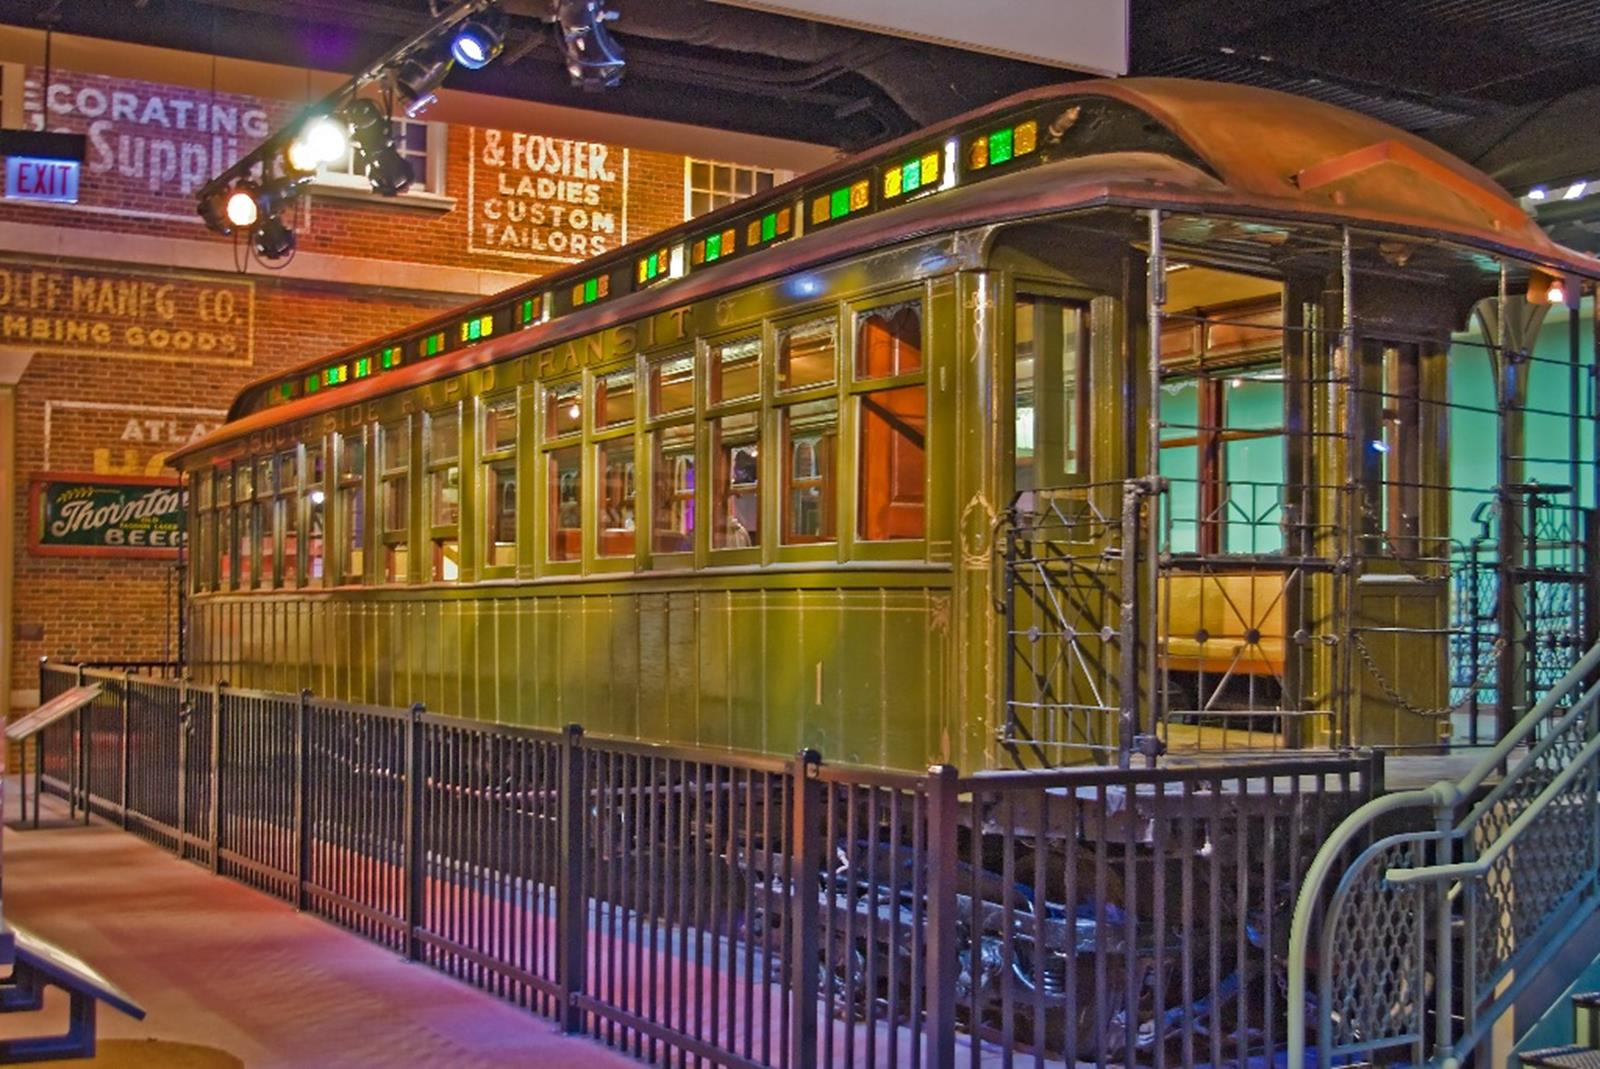 South Side Elevated Railroad Car - Chicago History Museum